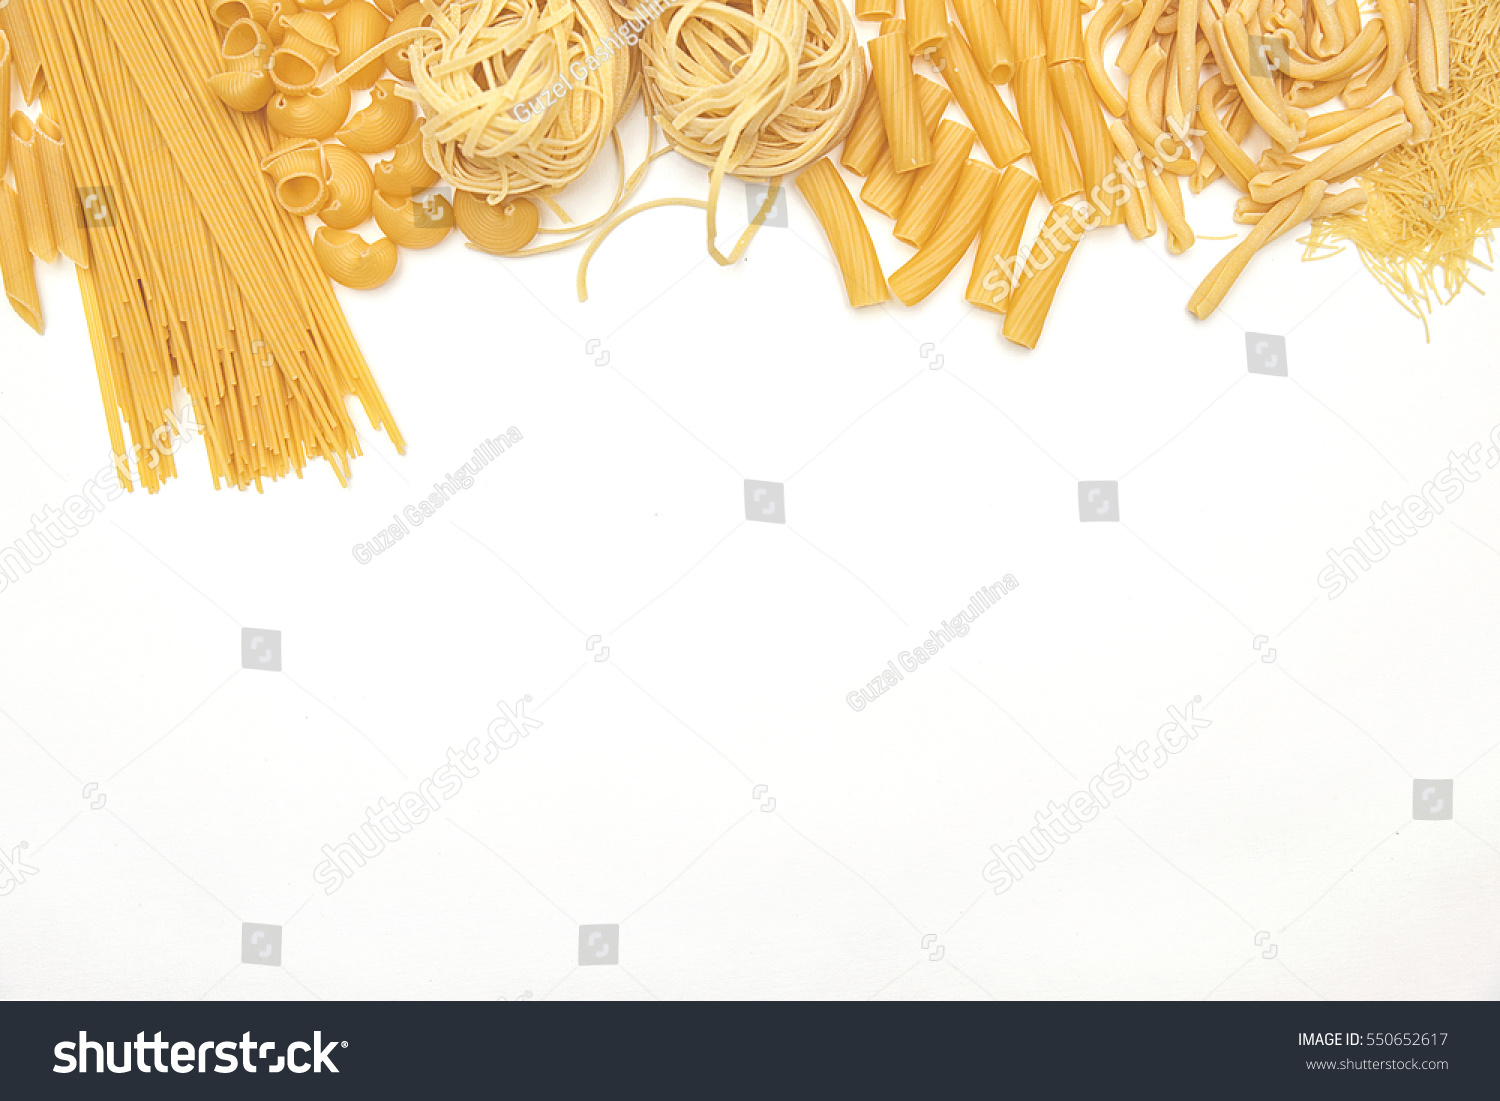 Food Drink Concept Various Uncooked Pasta Stock Photo Edit Now